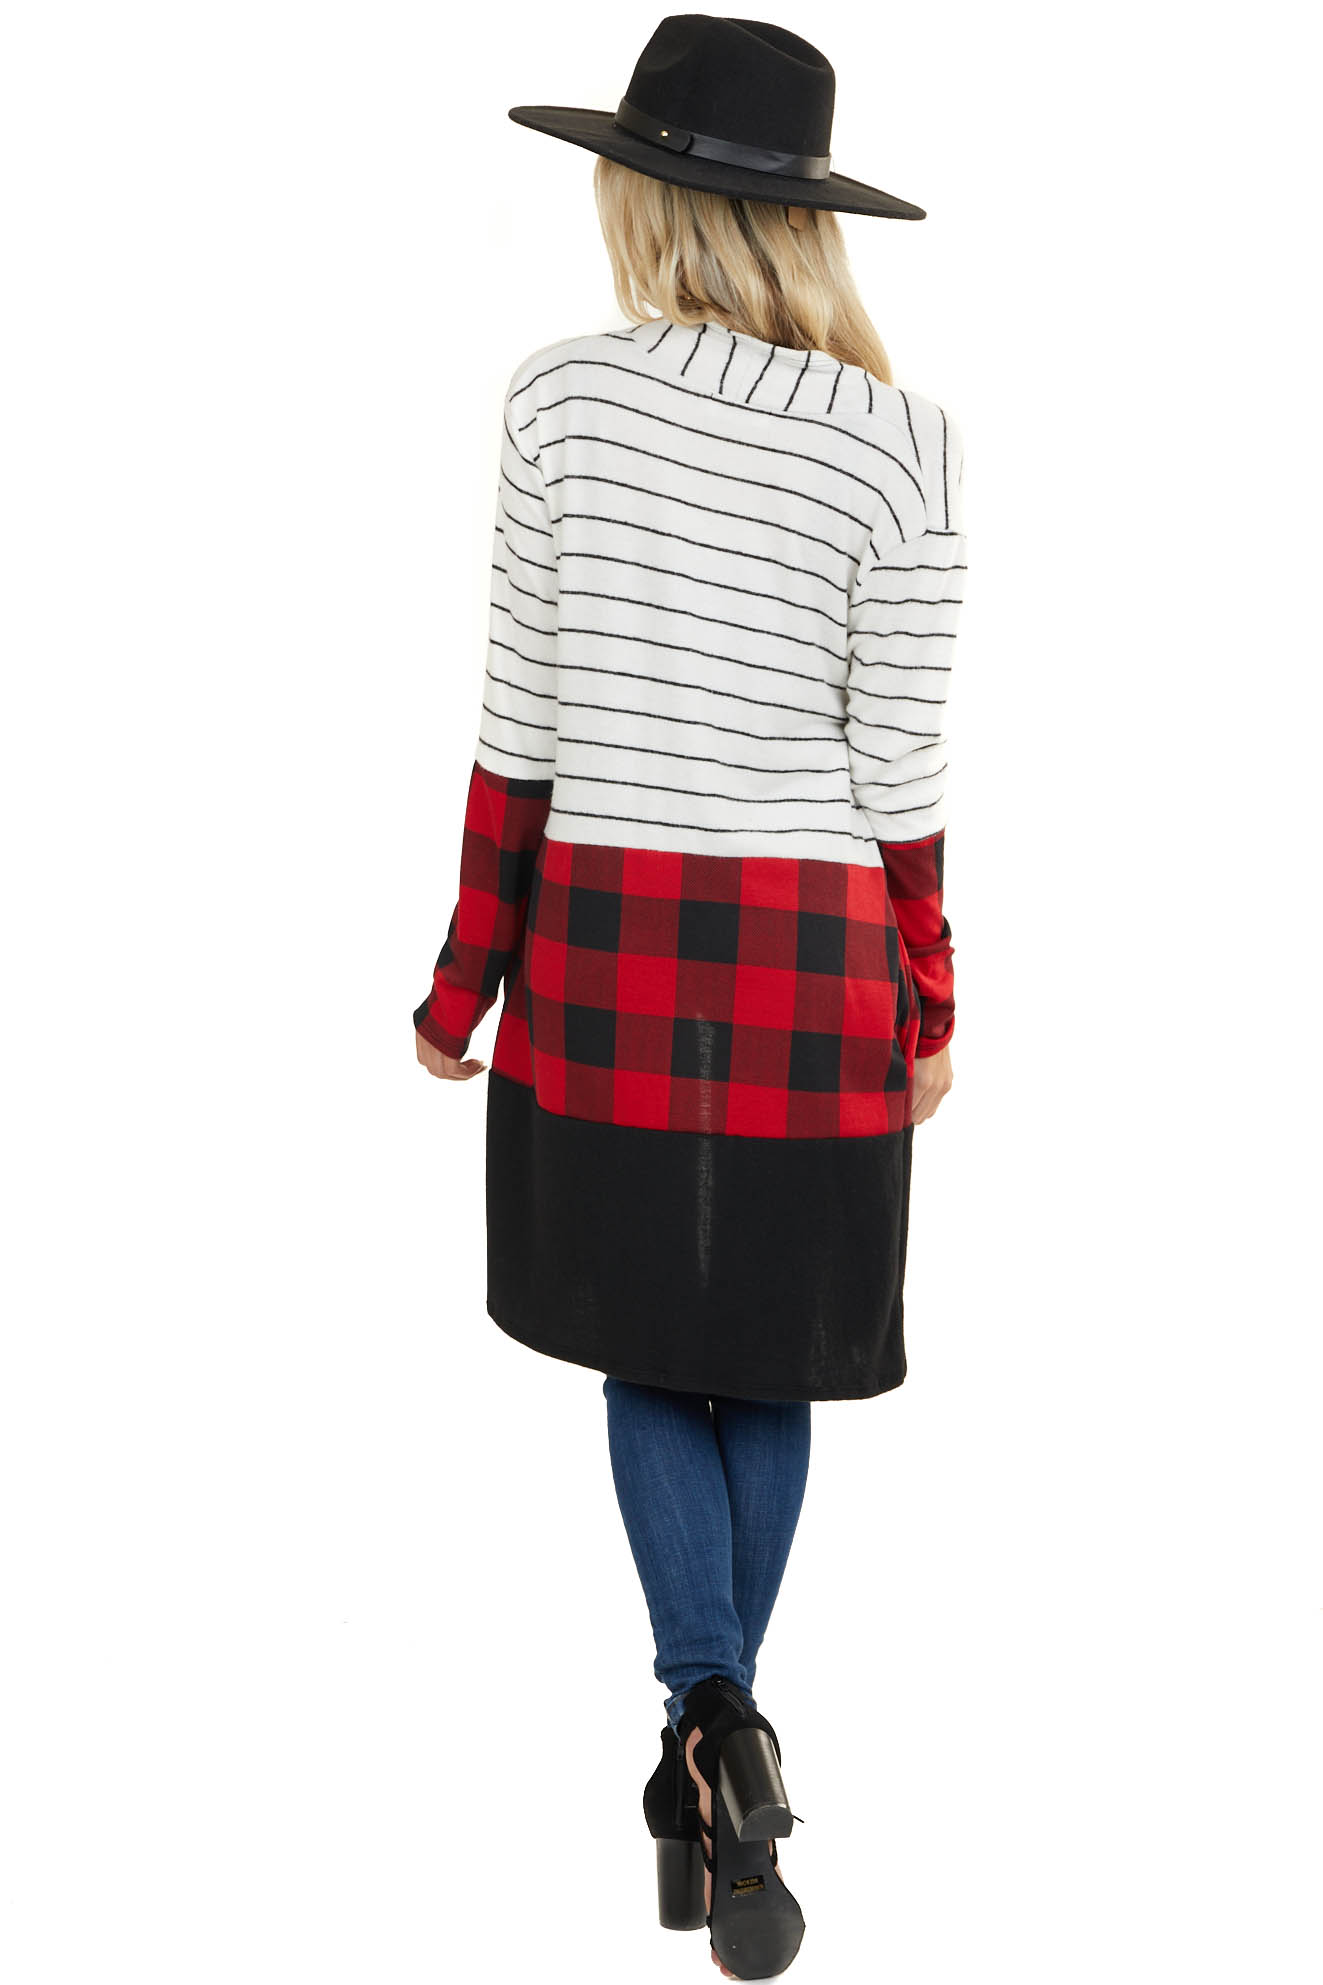 White and Black Striped Cardigan with Red Plaid Colorblock